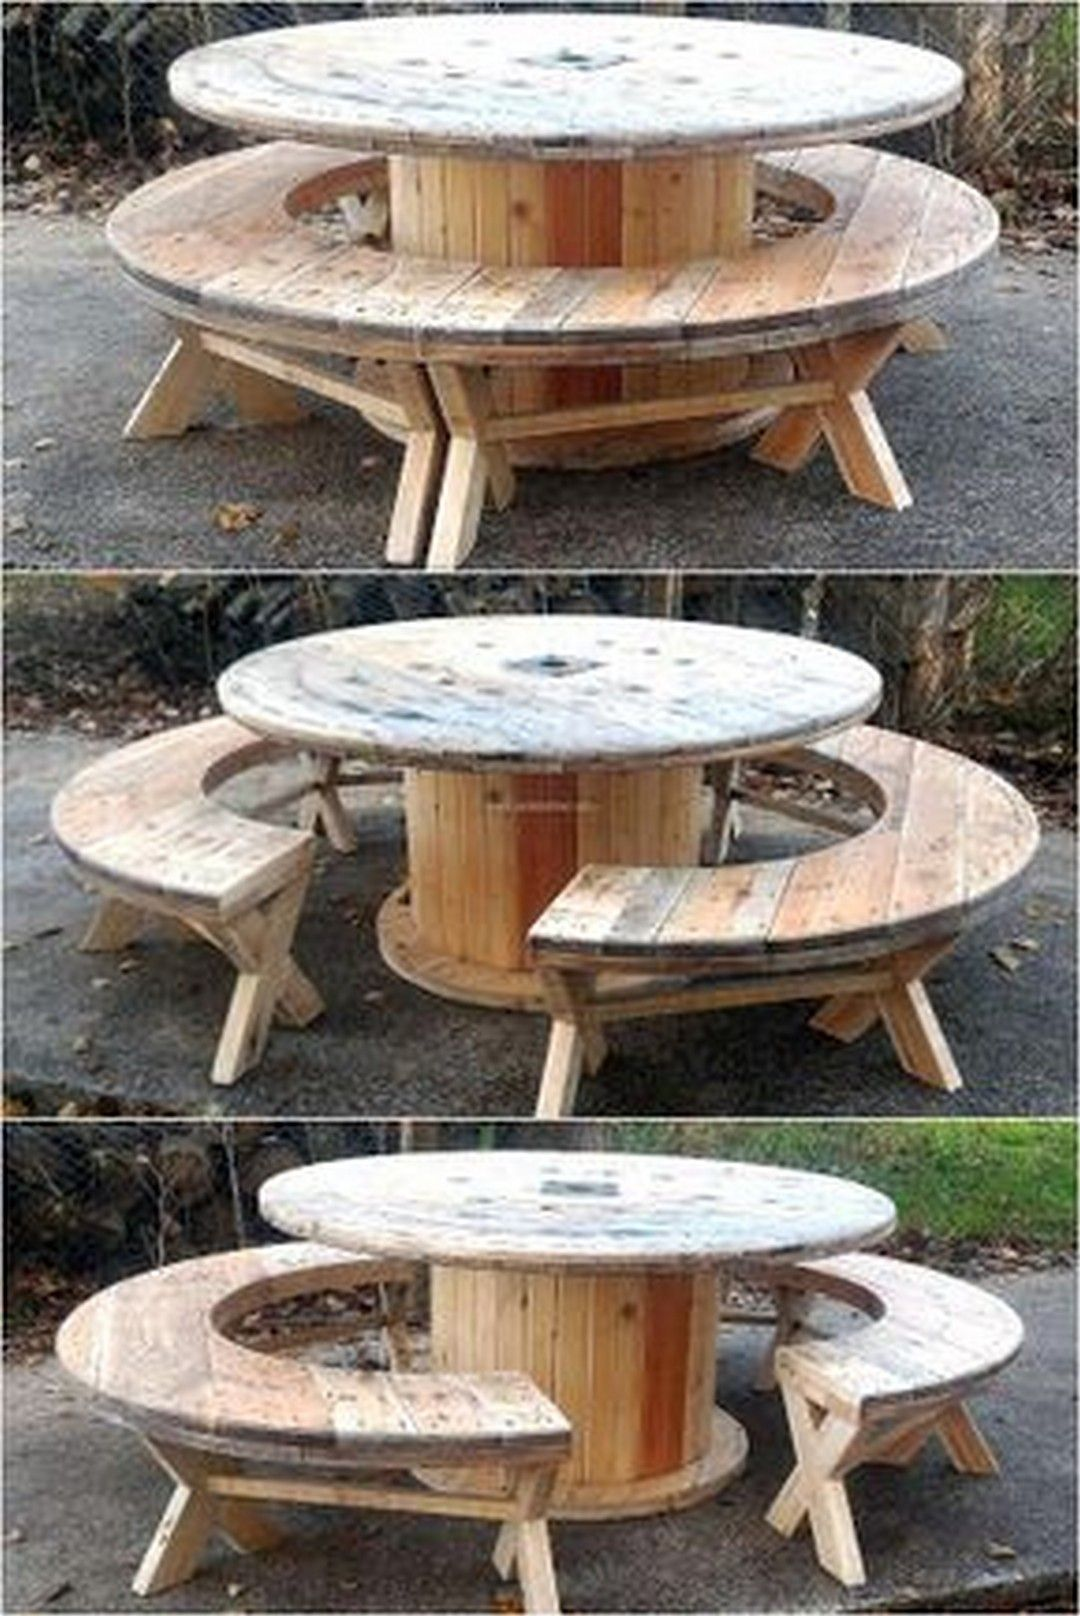 16 Awesome DIY Pallet Furniture Design Ideas  Decomagz is part of Pallet patio furniture - One of the most frequent pallet furniture projects must be the superior ole fashioned table  Obviously, you can paint the pallet wood to coordinate with the decor of your room too  It's one part of furniture which will surely be convenient  Regardless of what look, you wish to accomplish painti